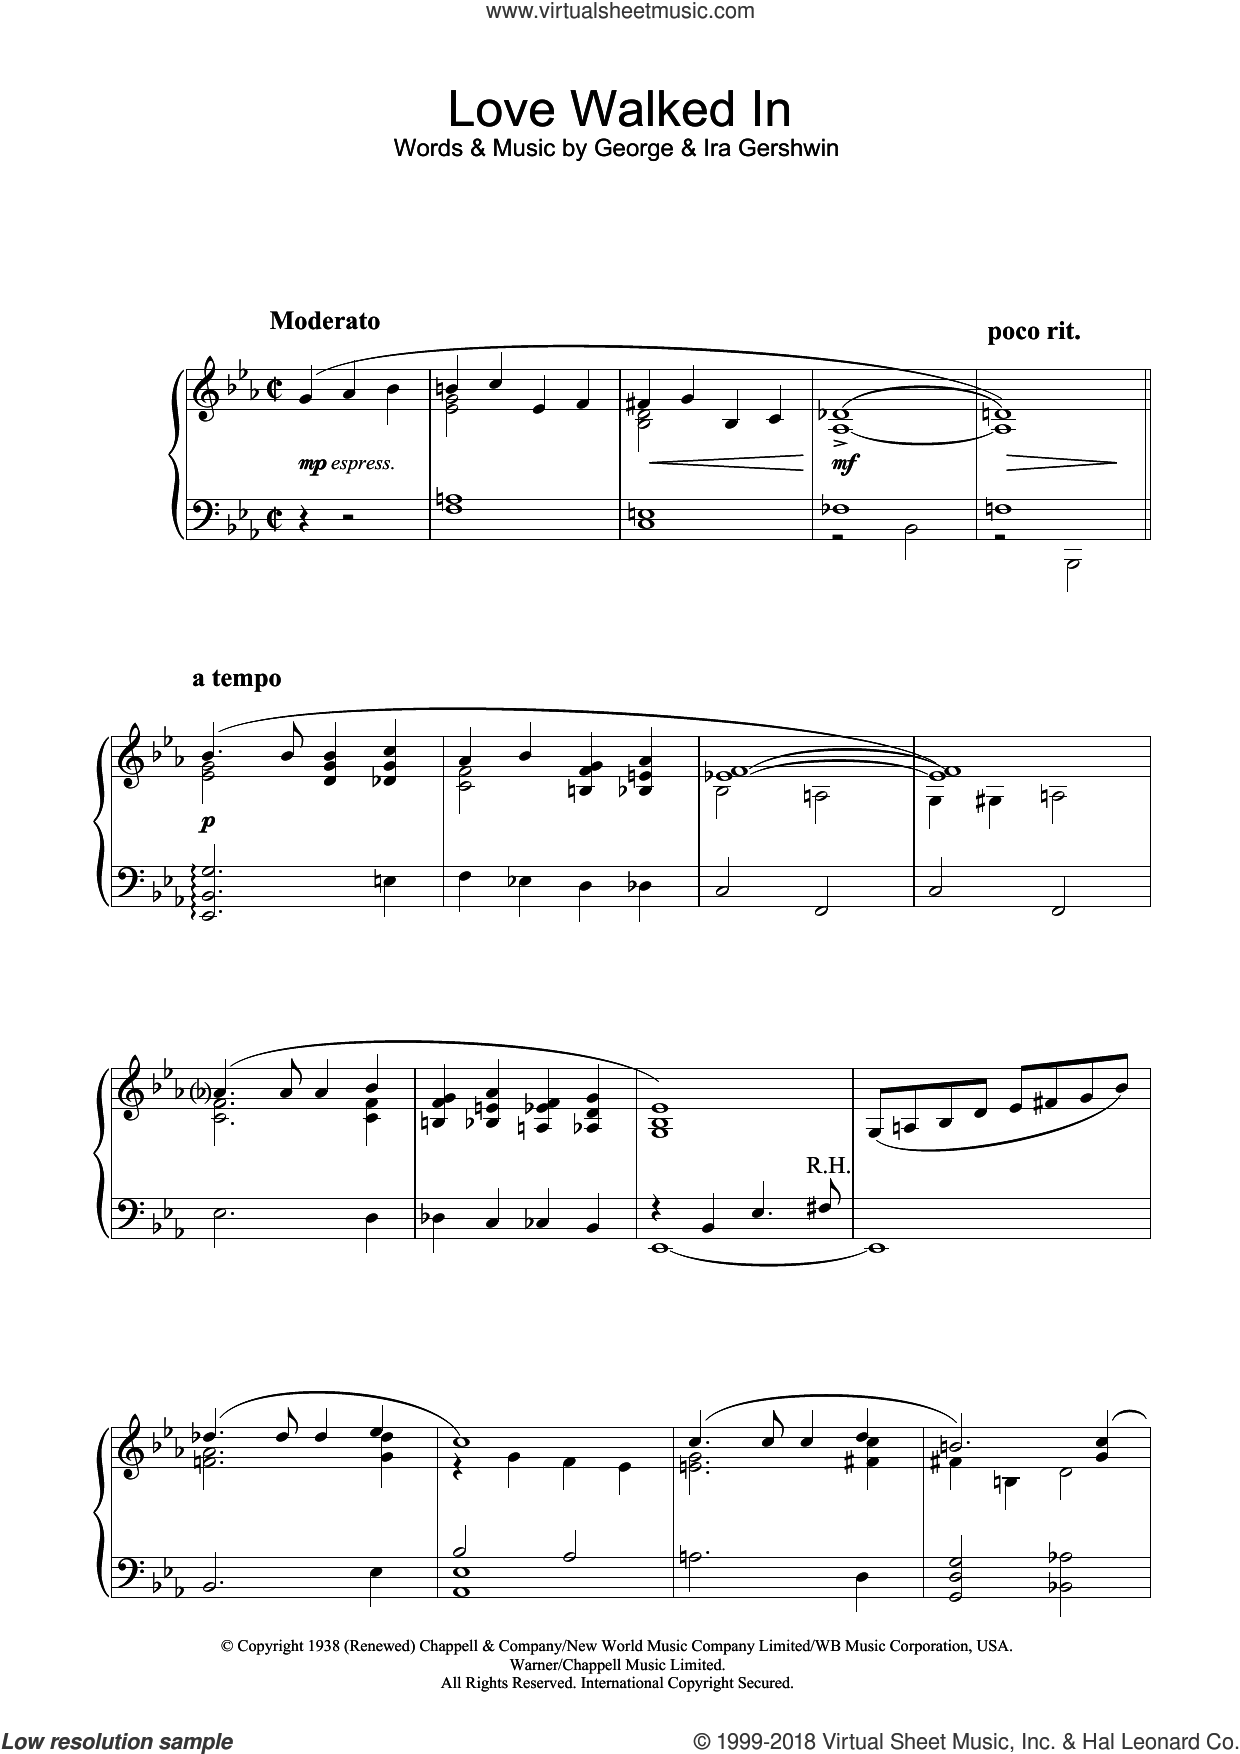 Love Walked In sheet music for piano solo by George Gershwin, GEORGE and Ira Gershwin, intermediate skill level